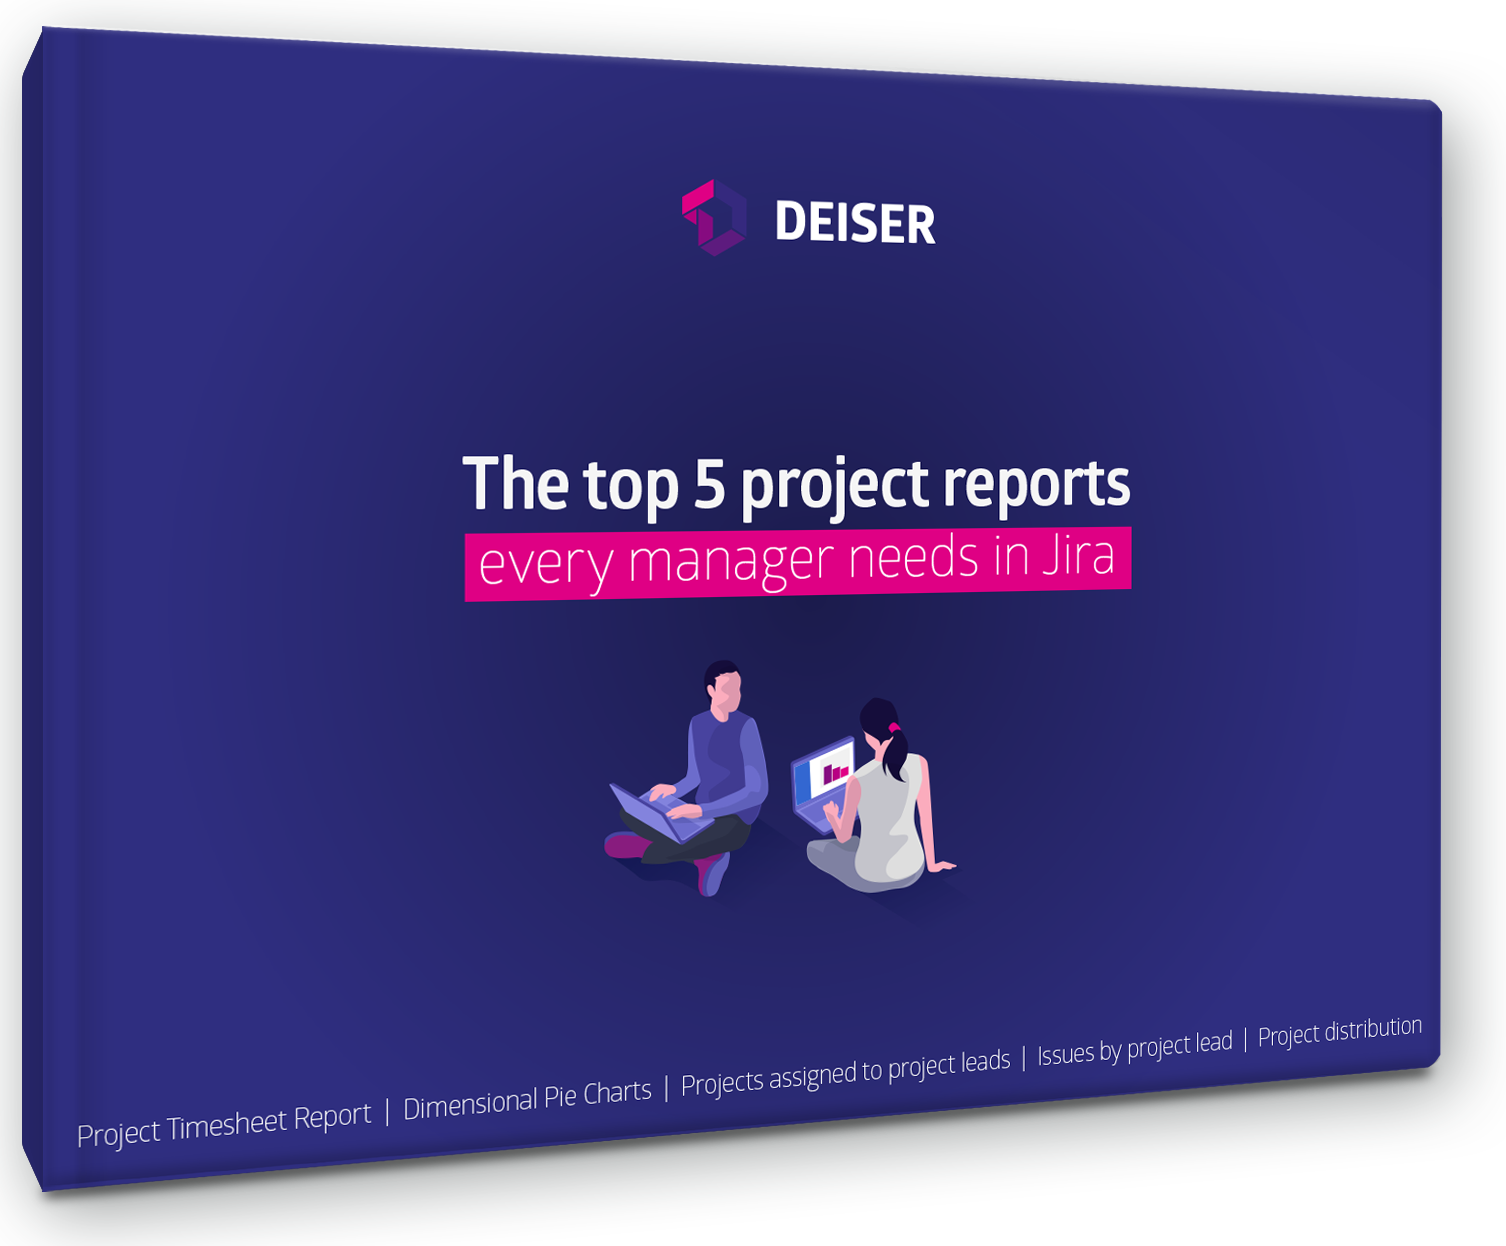 Project reports every manager needs in Jira